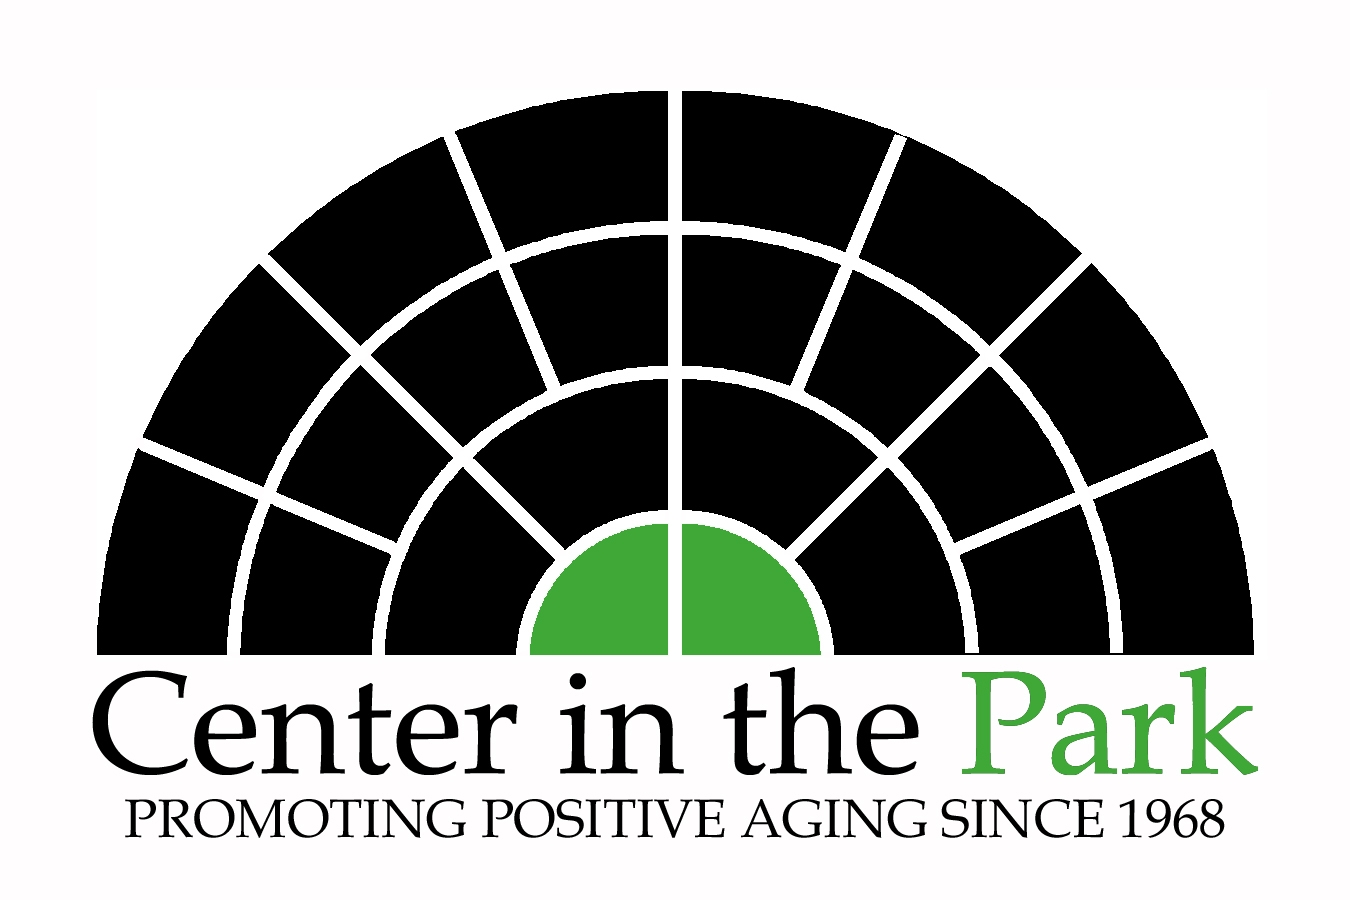 Center in the Park SeniorCenter